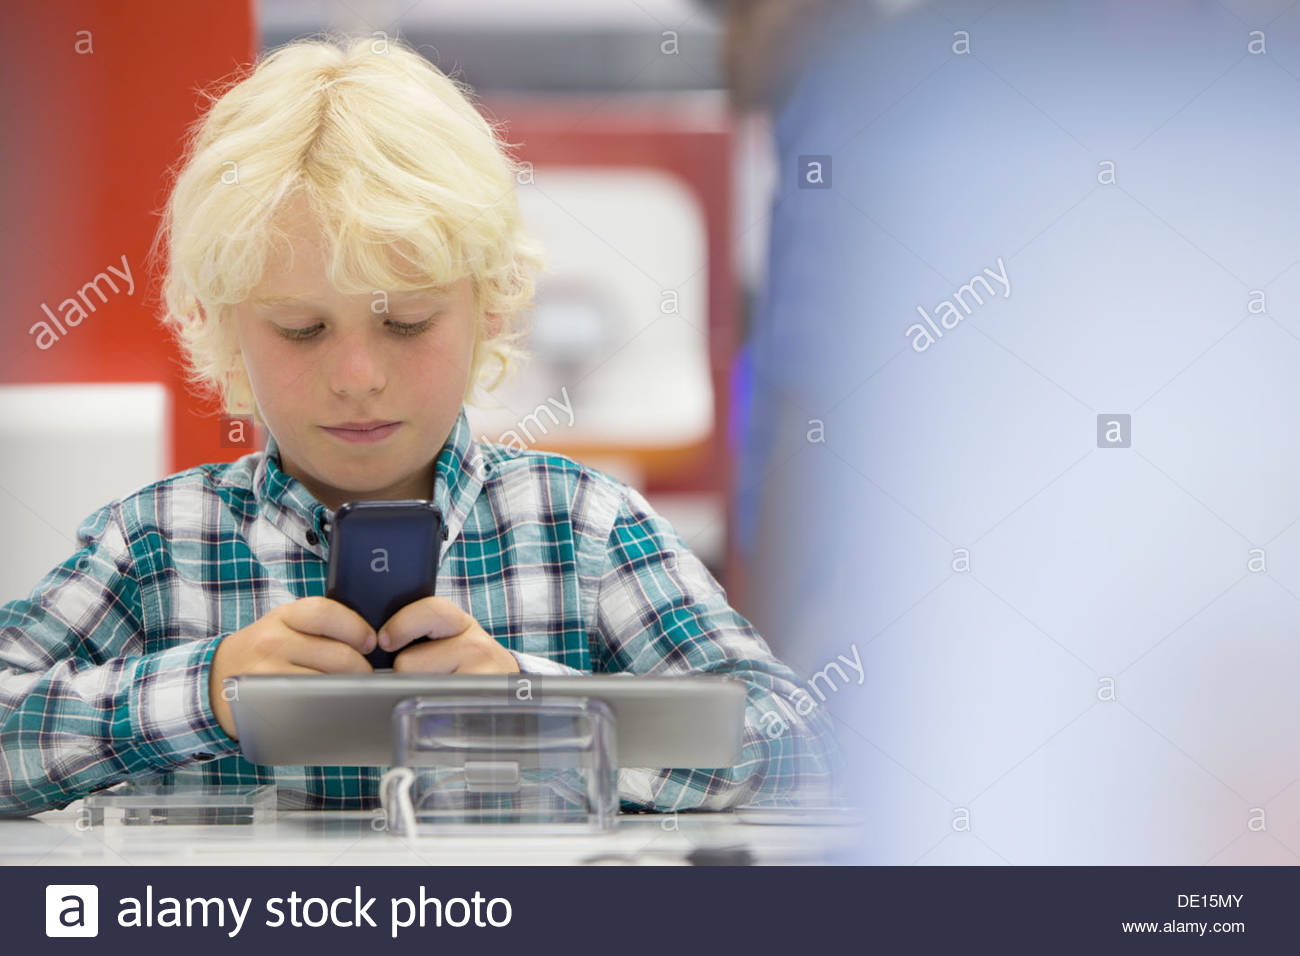 Boy looking at cell phone in electronics store - Stock Image